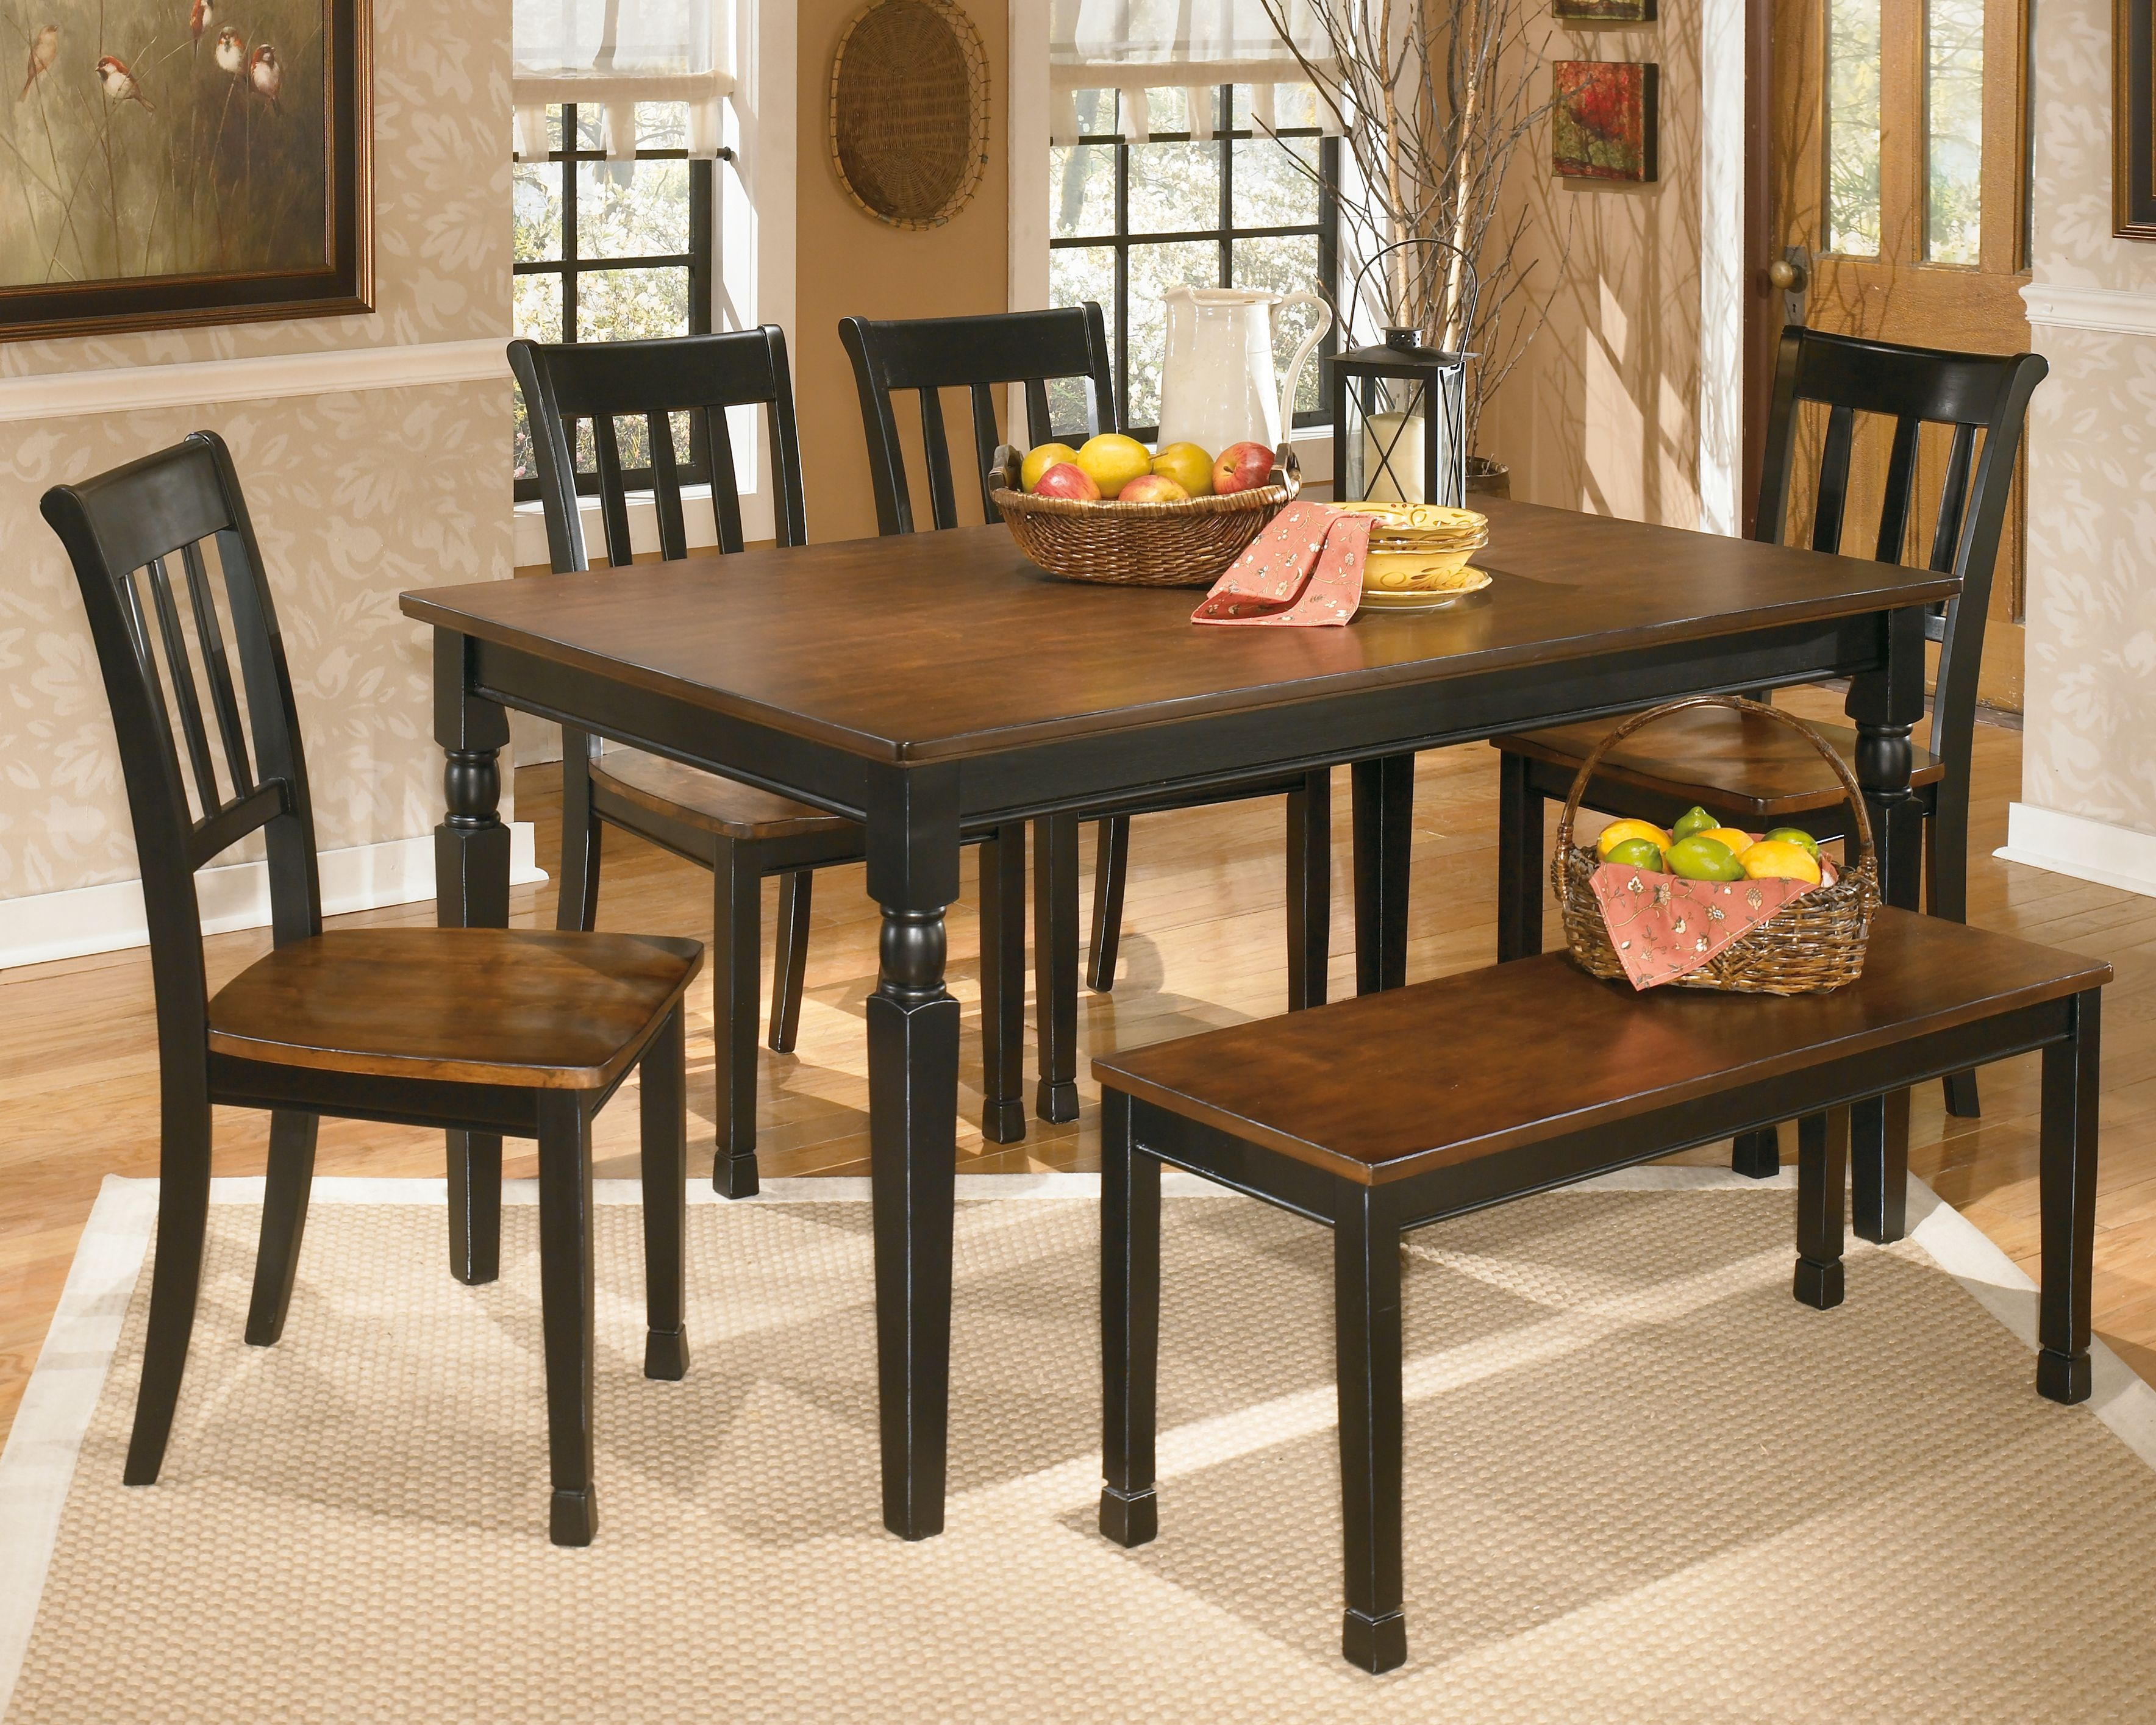 Owingsville Dining Table And 4 Chairs And Bench Ashley Furniture Homestore Rectangular Dining Room Table Side Chair Dining Room Dining Set With Bench